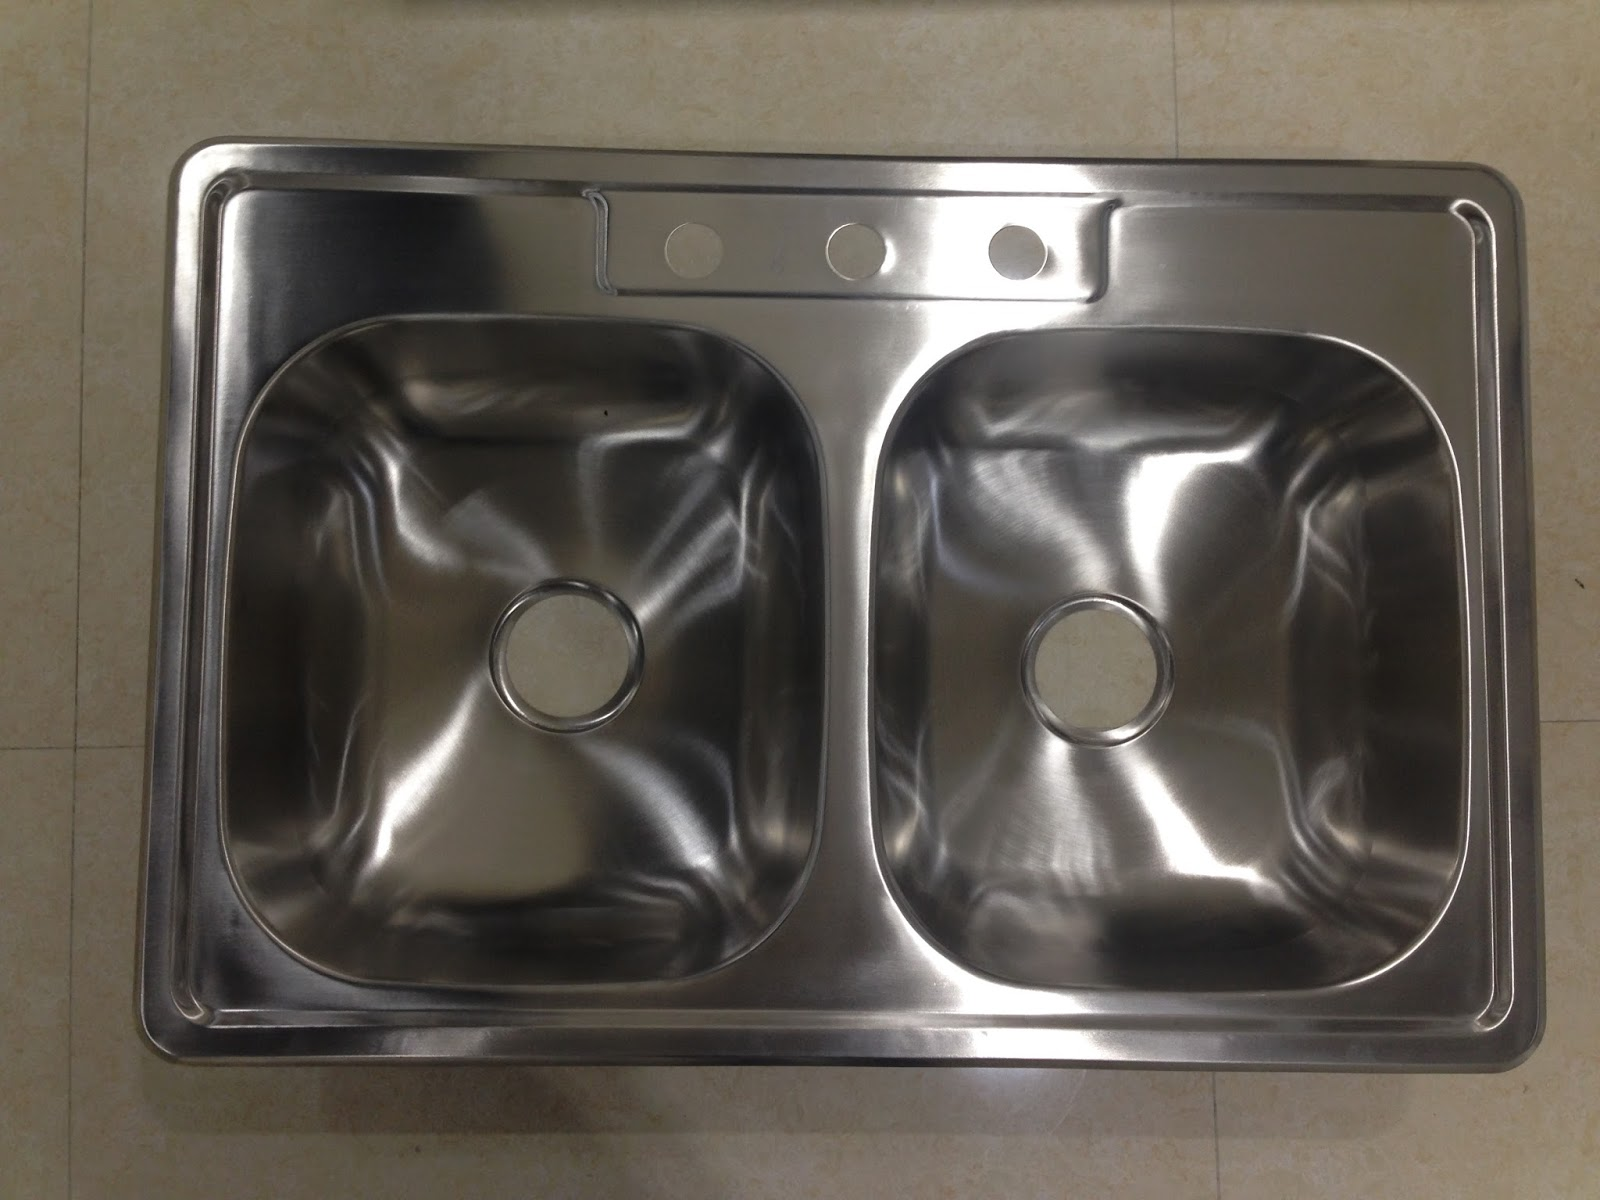 sink stainless undermount kitchen sinks steel franke gauge cheap elements